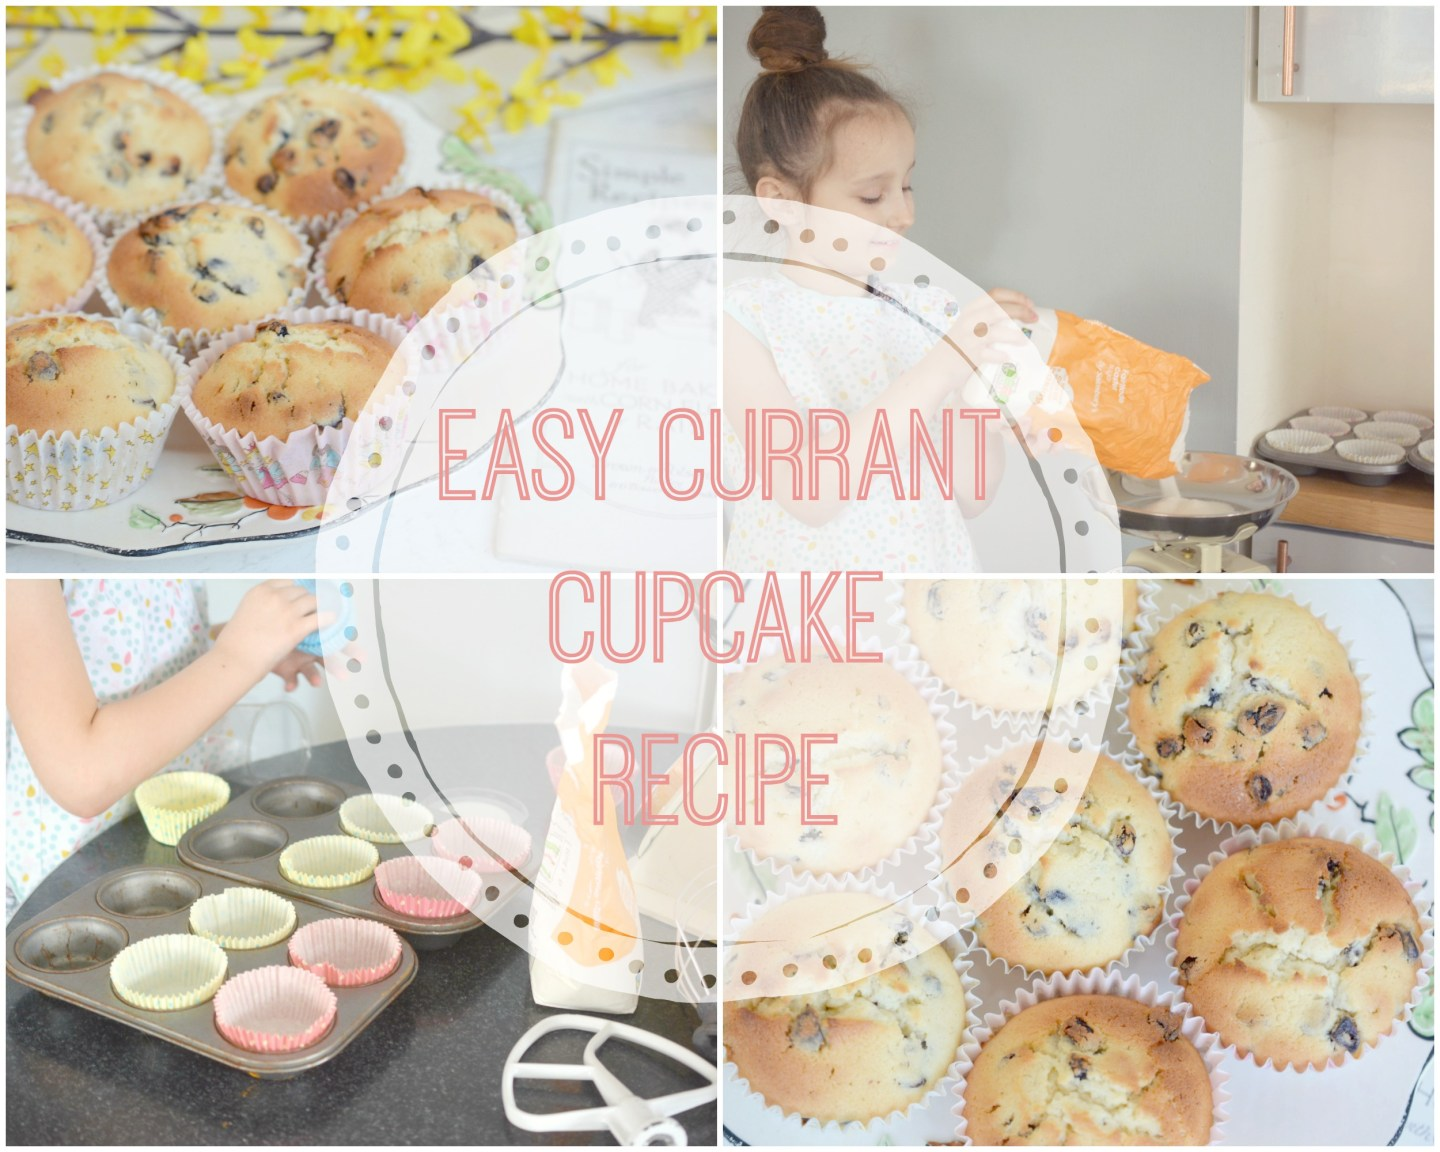 BAKING - Easy Currant Cupcakes Recipe